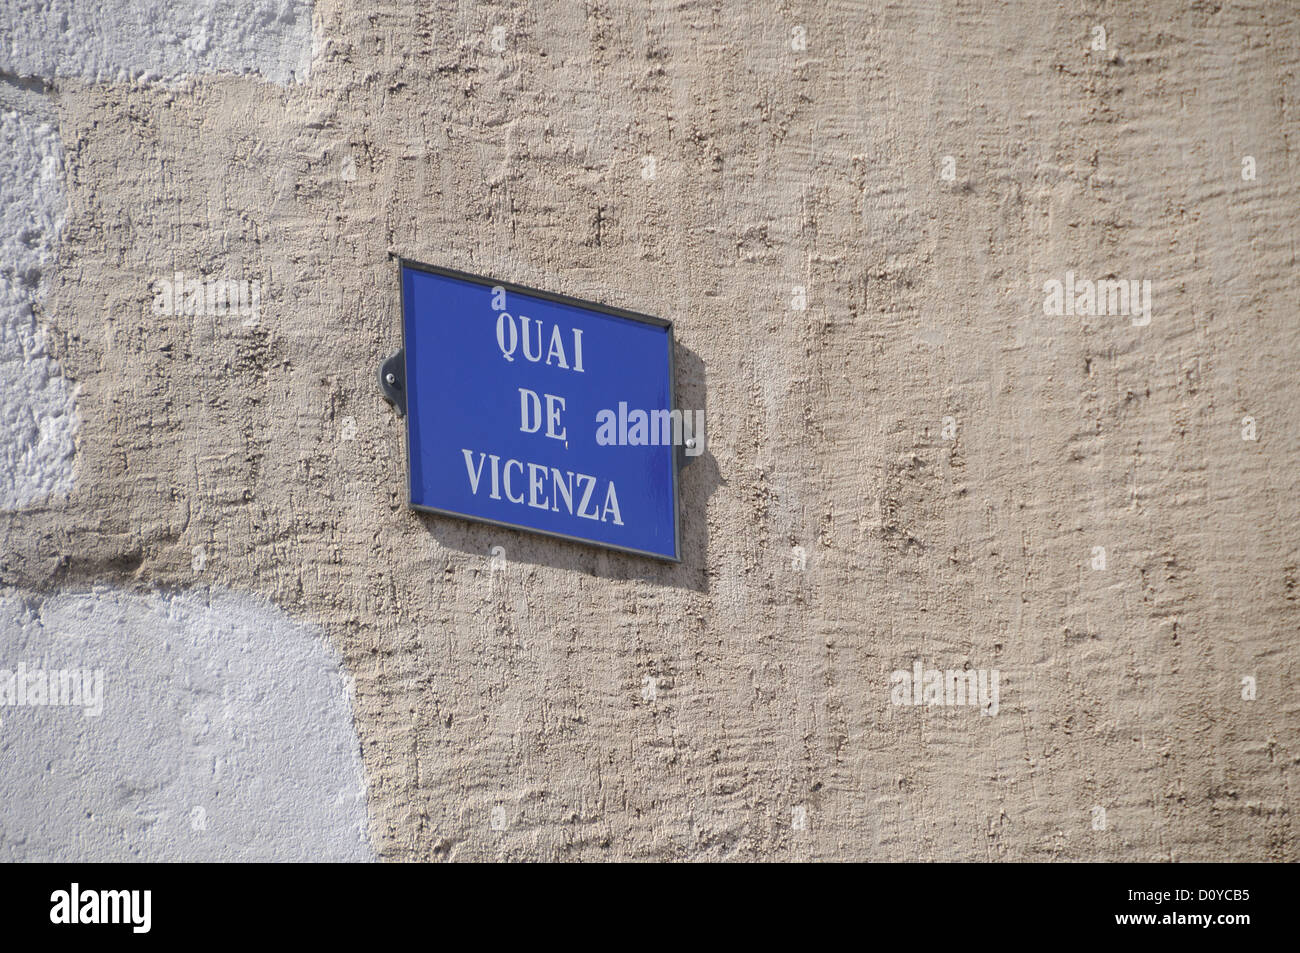 Blue sign on a plastered wall saying 'Quai de Vicenza'.   Annecy, France. - Stock Image